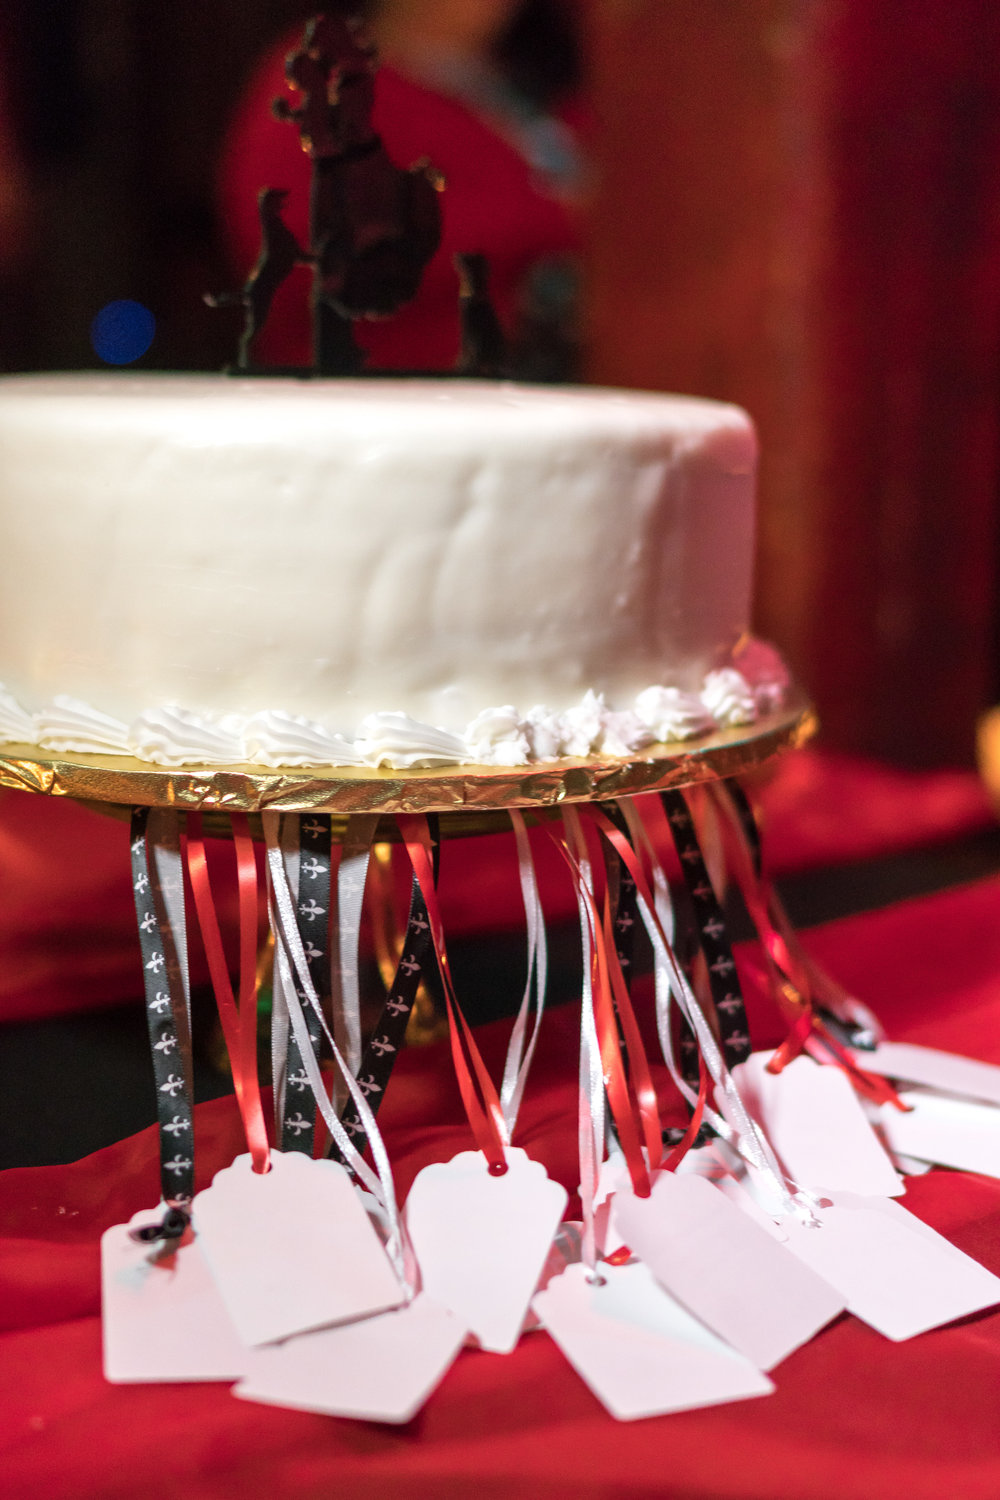 close up image of wedding cake with goodie tags from bride and groom